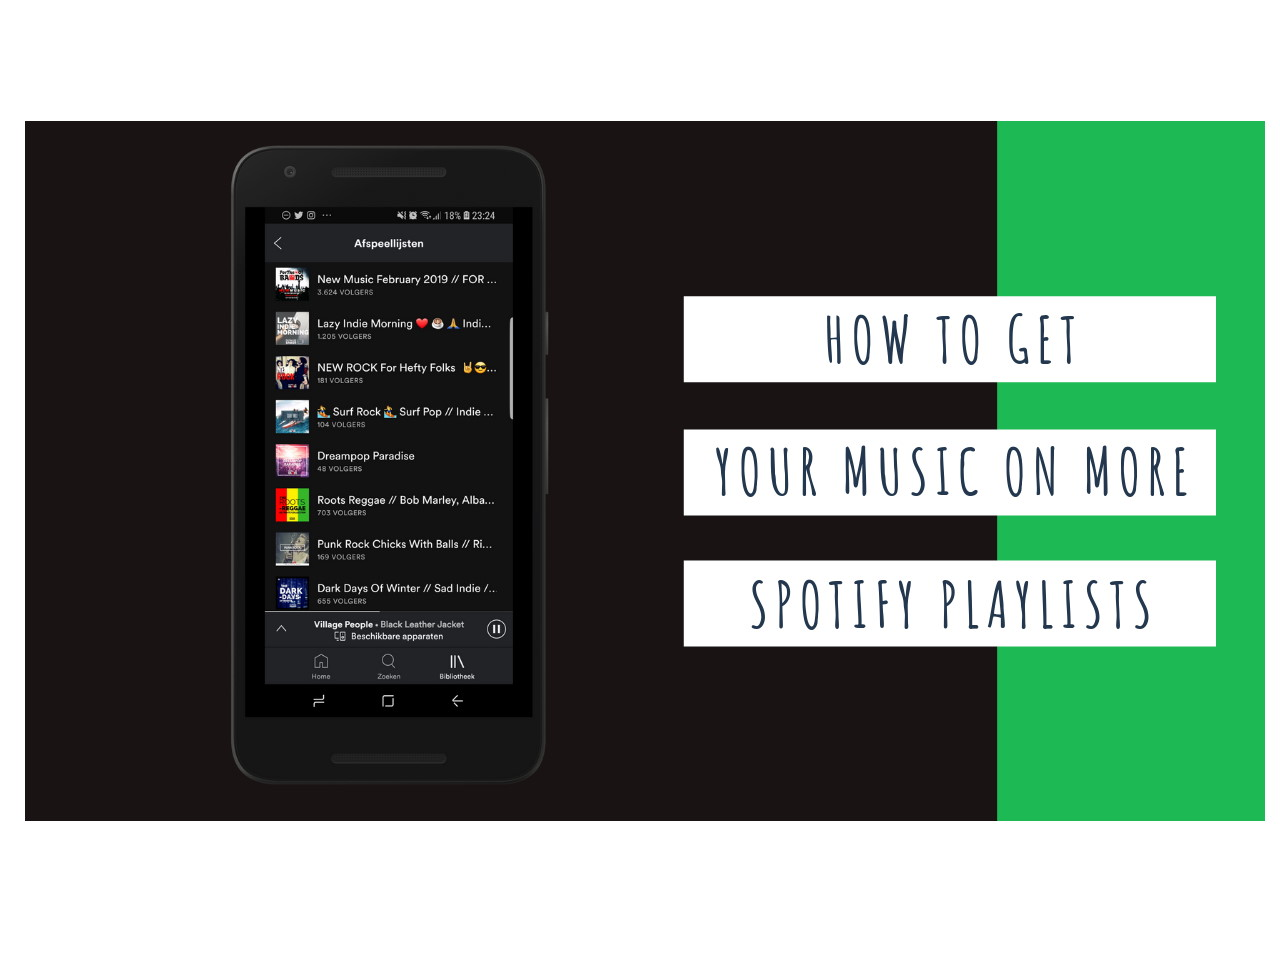 how to get on more spotify playlists